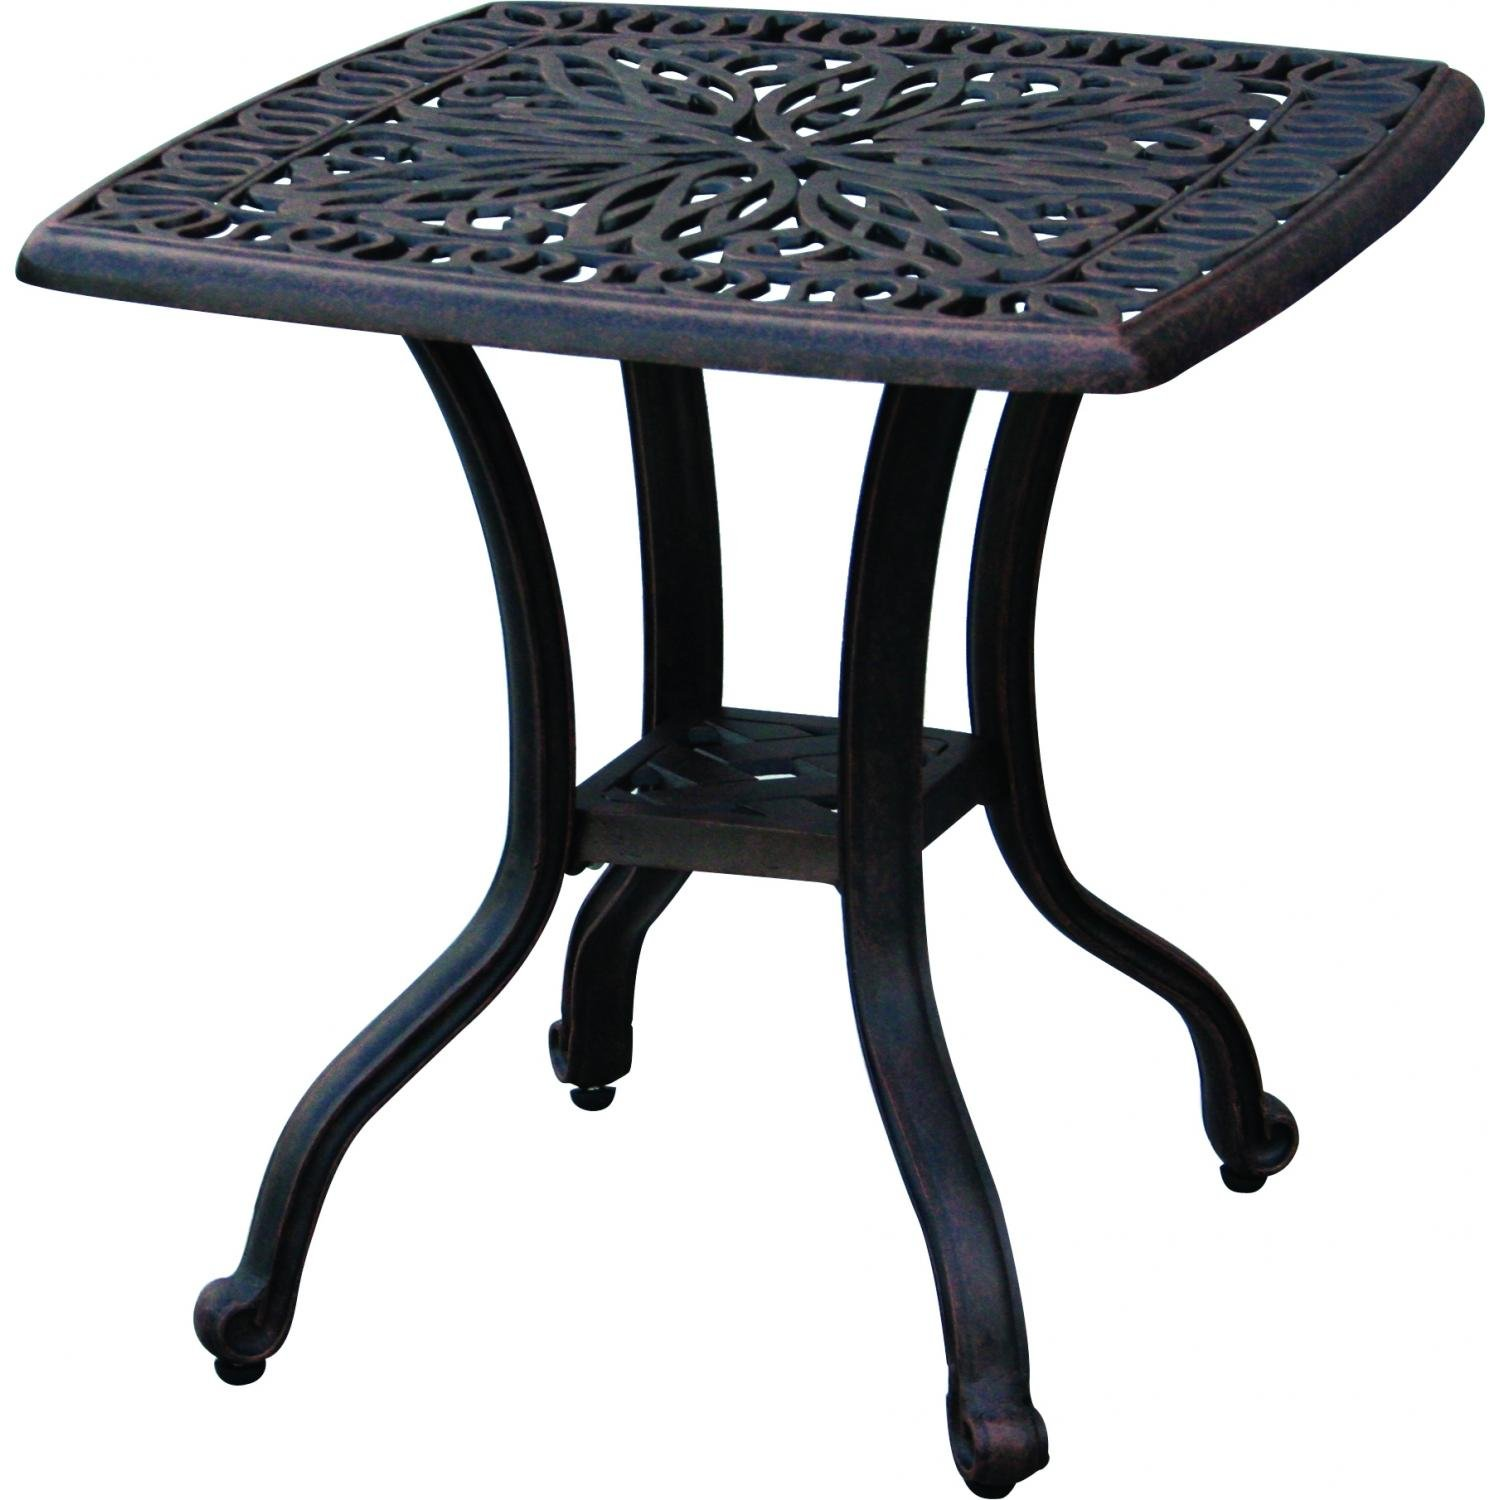 darlee elisabeth cast aluminum outdoor patio end table accent tables inch square antique bronze side garden nautical lamps bunnings shuffleboard gallerie dining set blue living